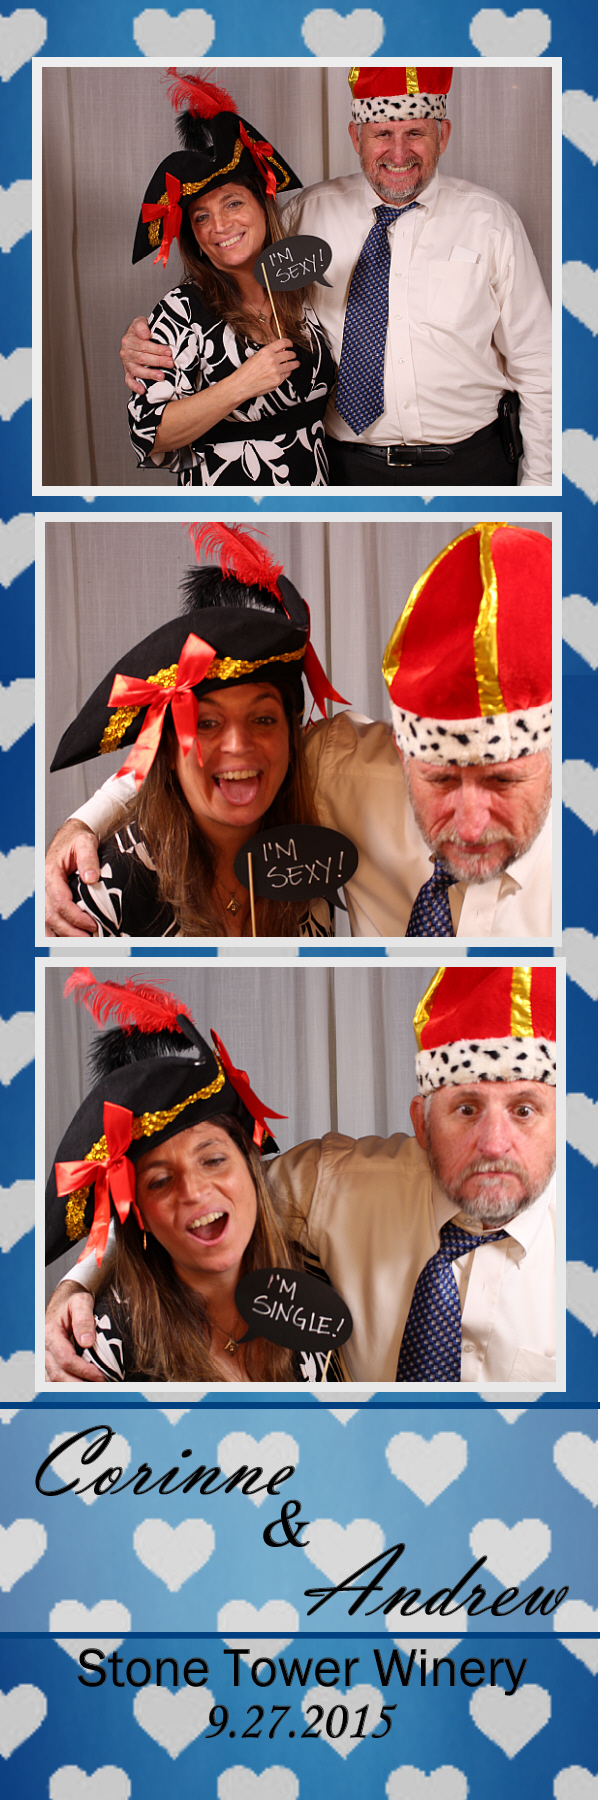 Guest House Events Photo Booth C&A (23).jpg